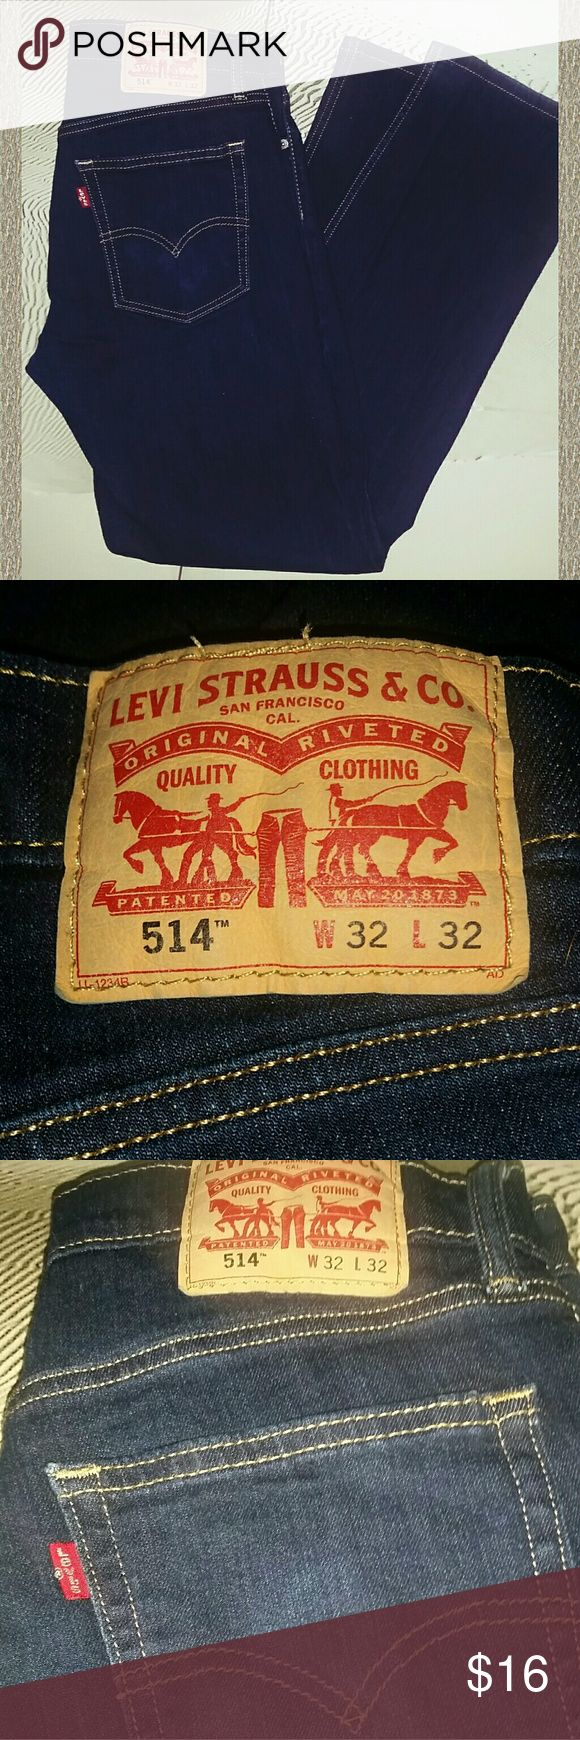 👖Men's LIKE NEW Levi's Jeans 514 Rarely worn, dark denim Levi's 514 in size 32×32. Crisp, clean Levi's tag, no signs of wear. Levi's Jeans Straight